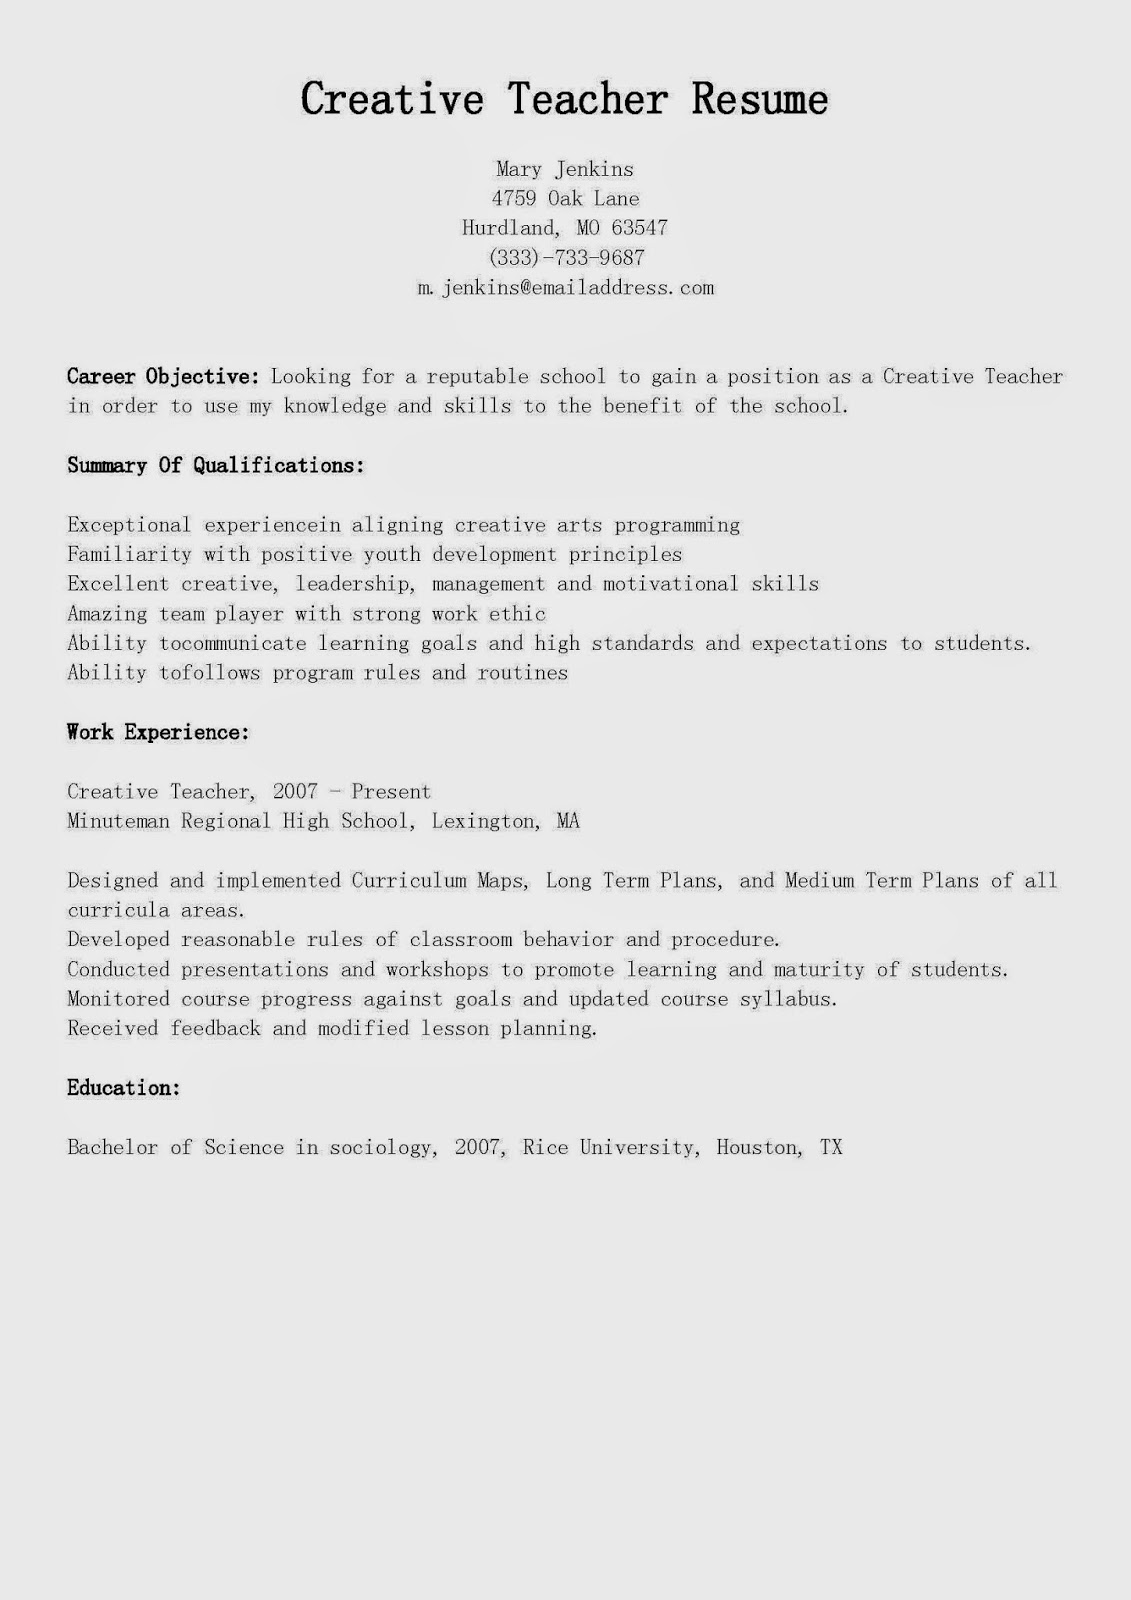 resume samples  creative teacher resume sample